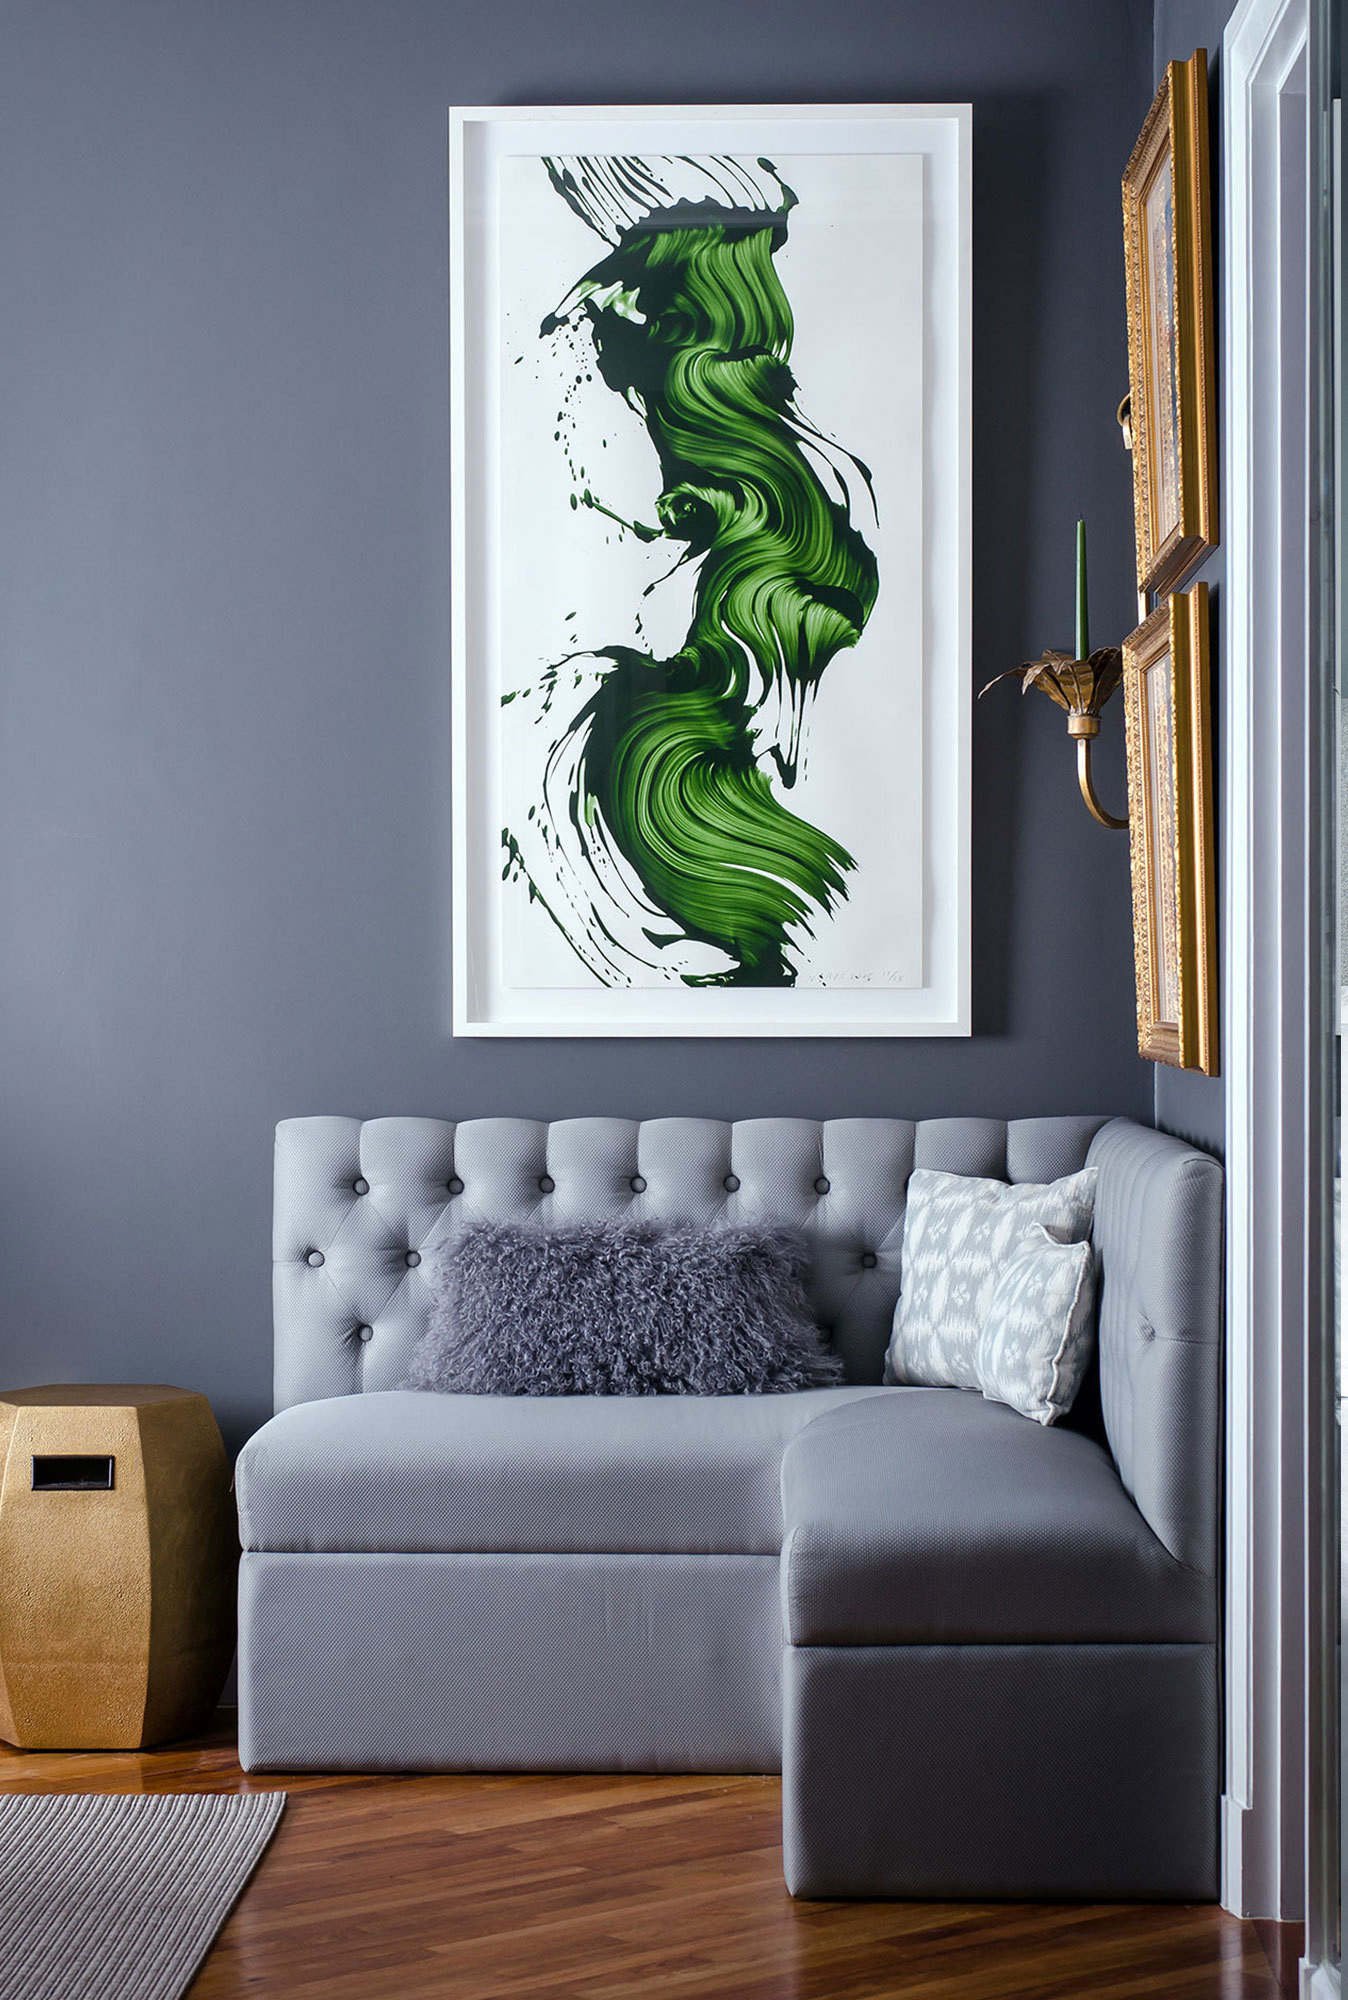 A James Nares lithograph hangs above a corner banquette.